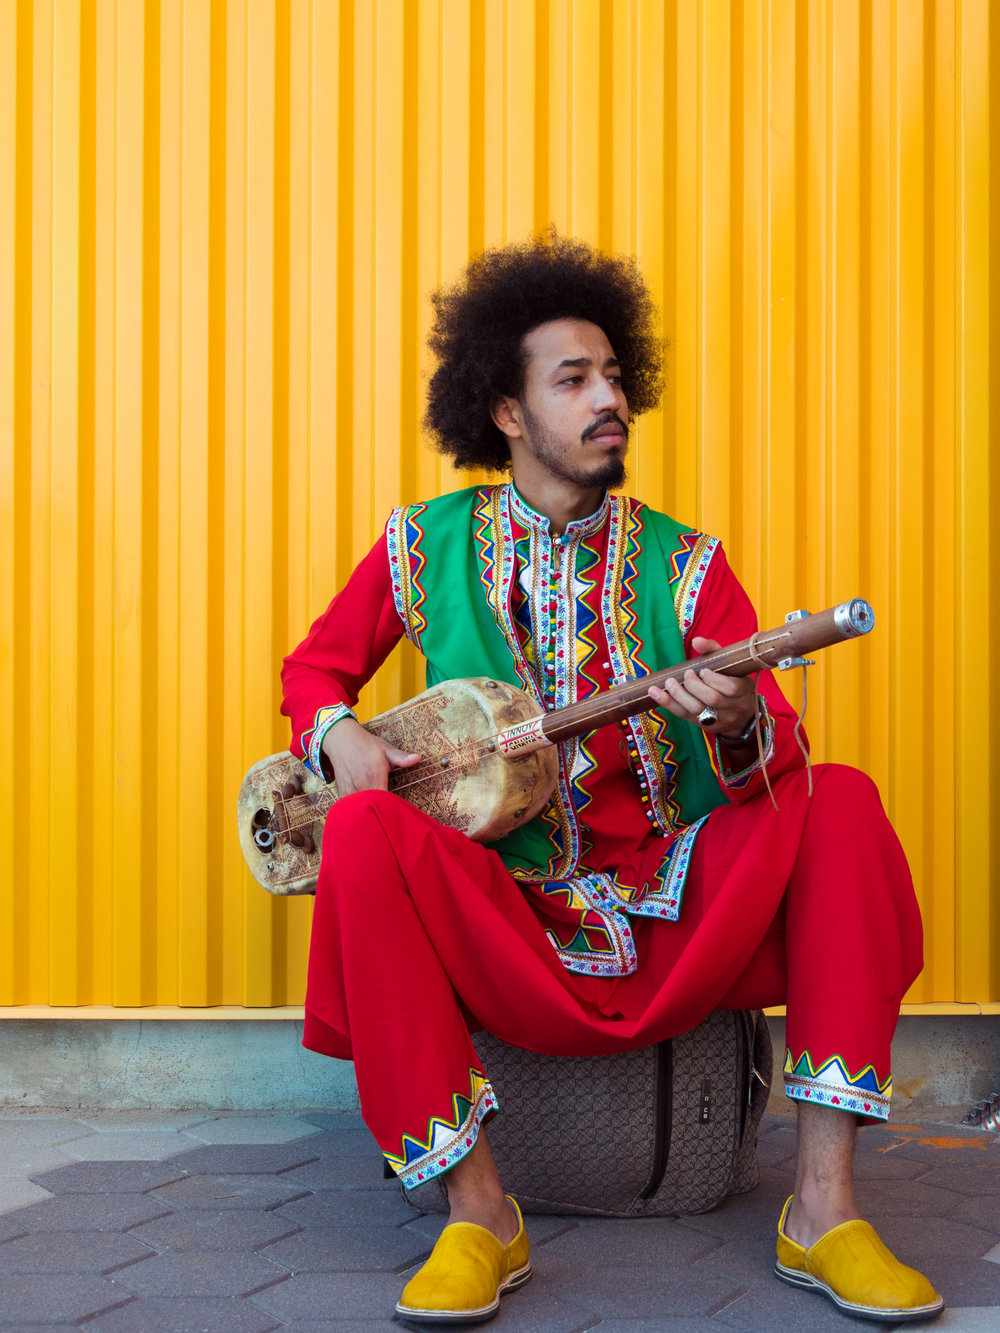 SAMIR LANGUS  | INTRO TO GNAWA MUSIC & CULTURE, SENTIR, PERCUSSION